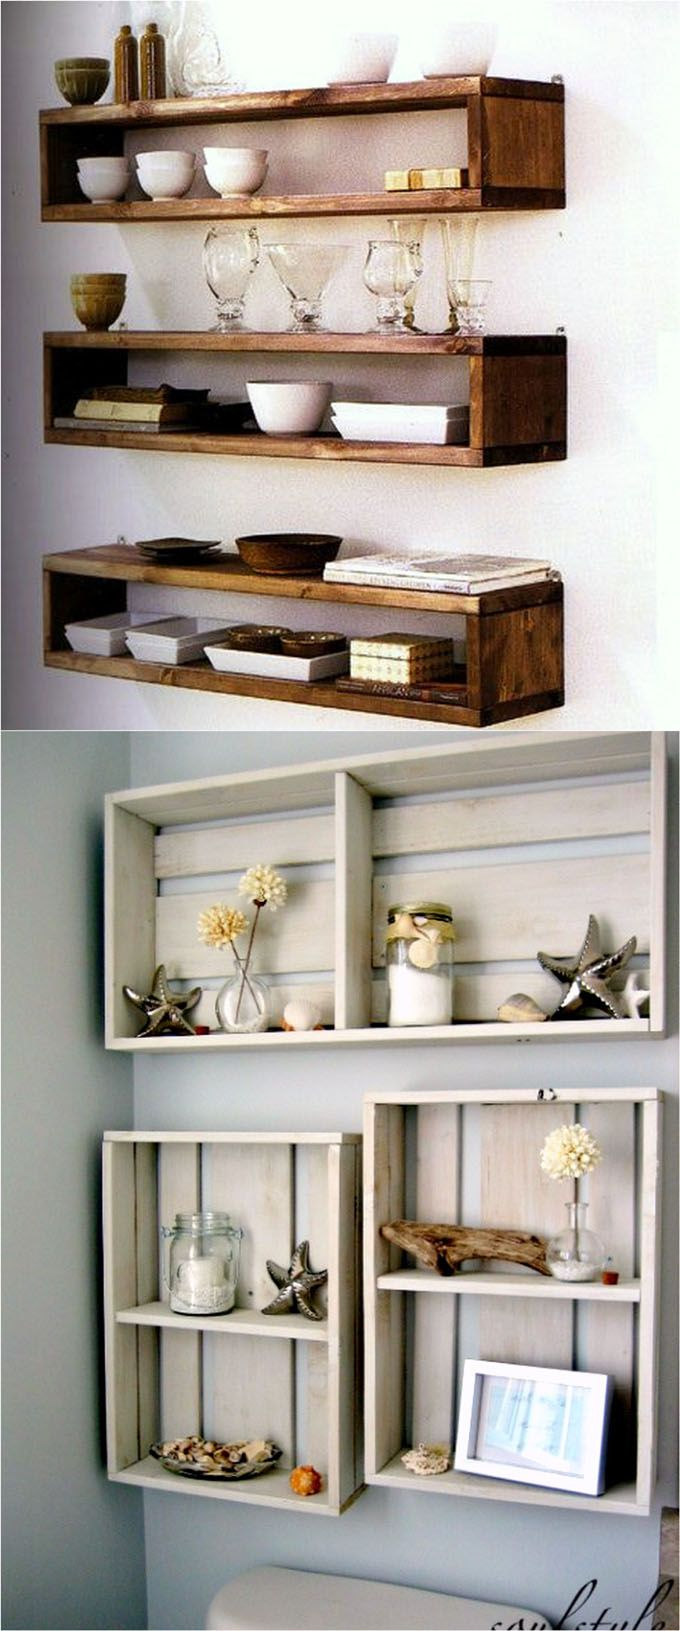 Best 25 Wall Shelves Ideas On Pinterest Shelves Wall